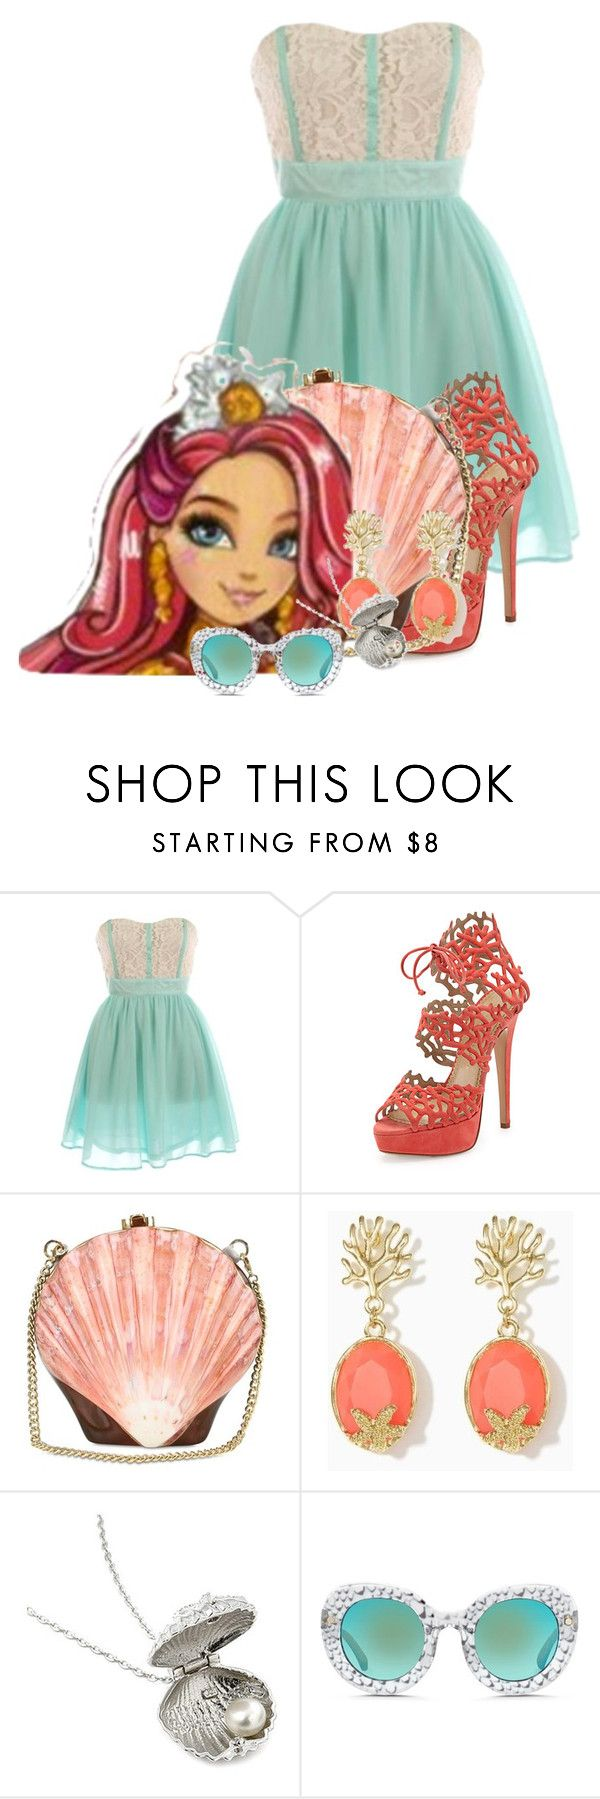 """""""Meeshell Mermaid outfit-Maddy"""" by pinkie8 ❤ liked on Polyvore featuring Charlotte Olympia, Rocio, Fantasy Jewelry Box and Matthew Williamson"""